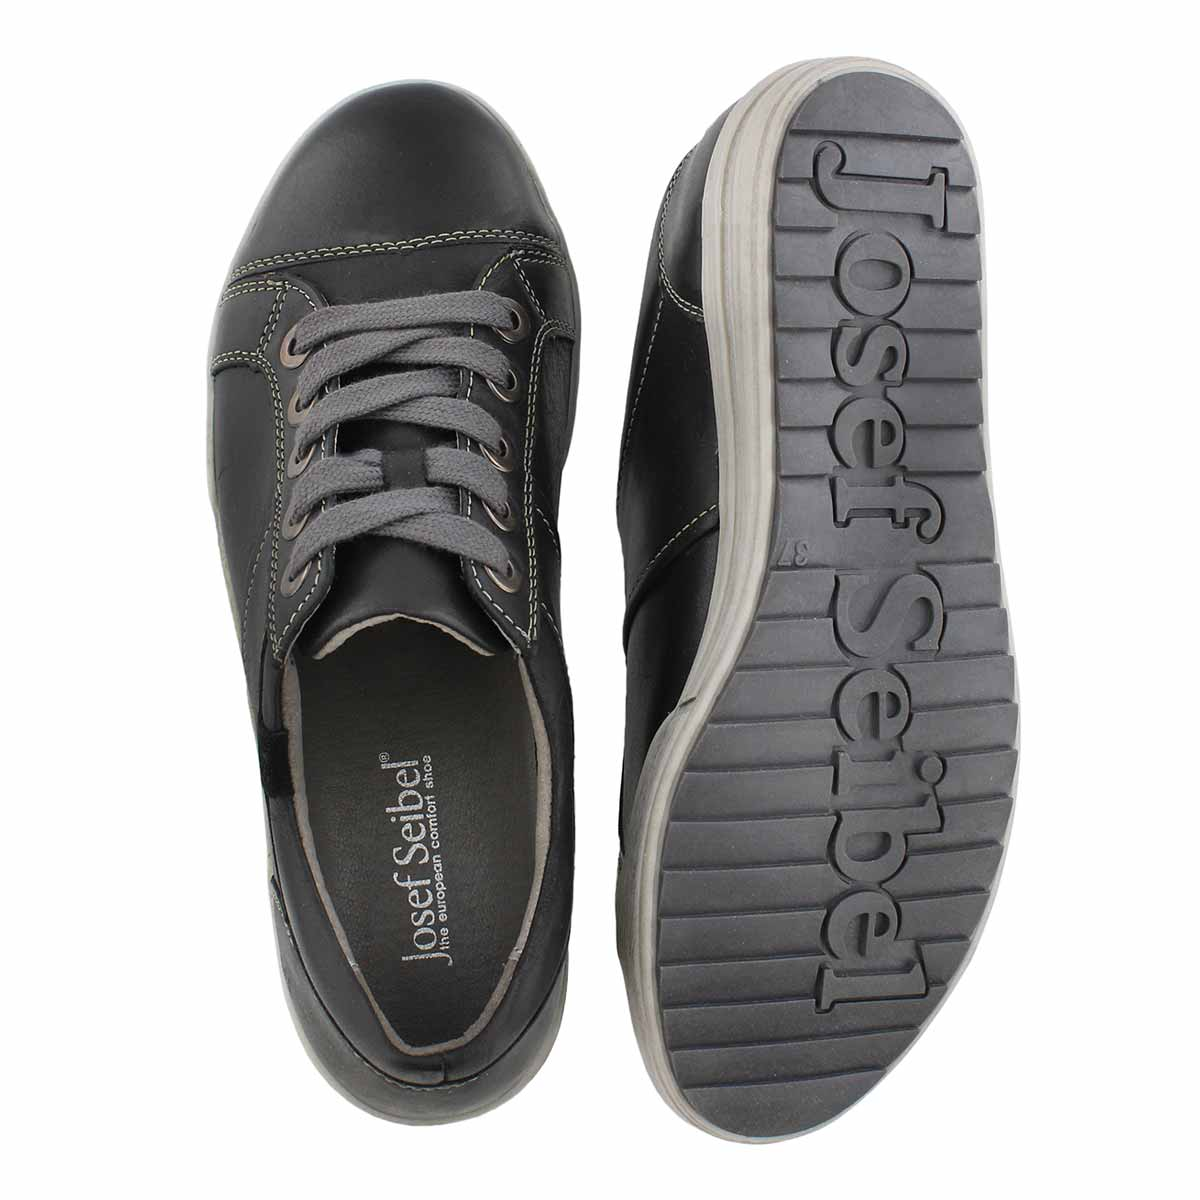 Lds Dany59 black lace up casual snkr